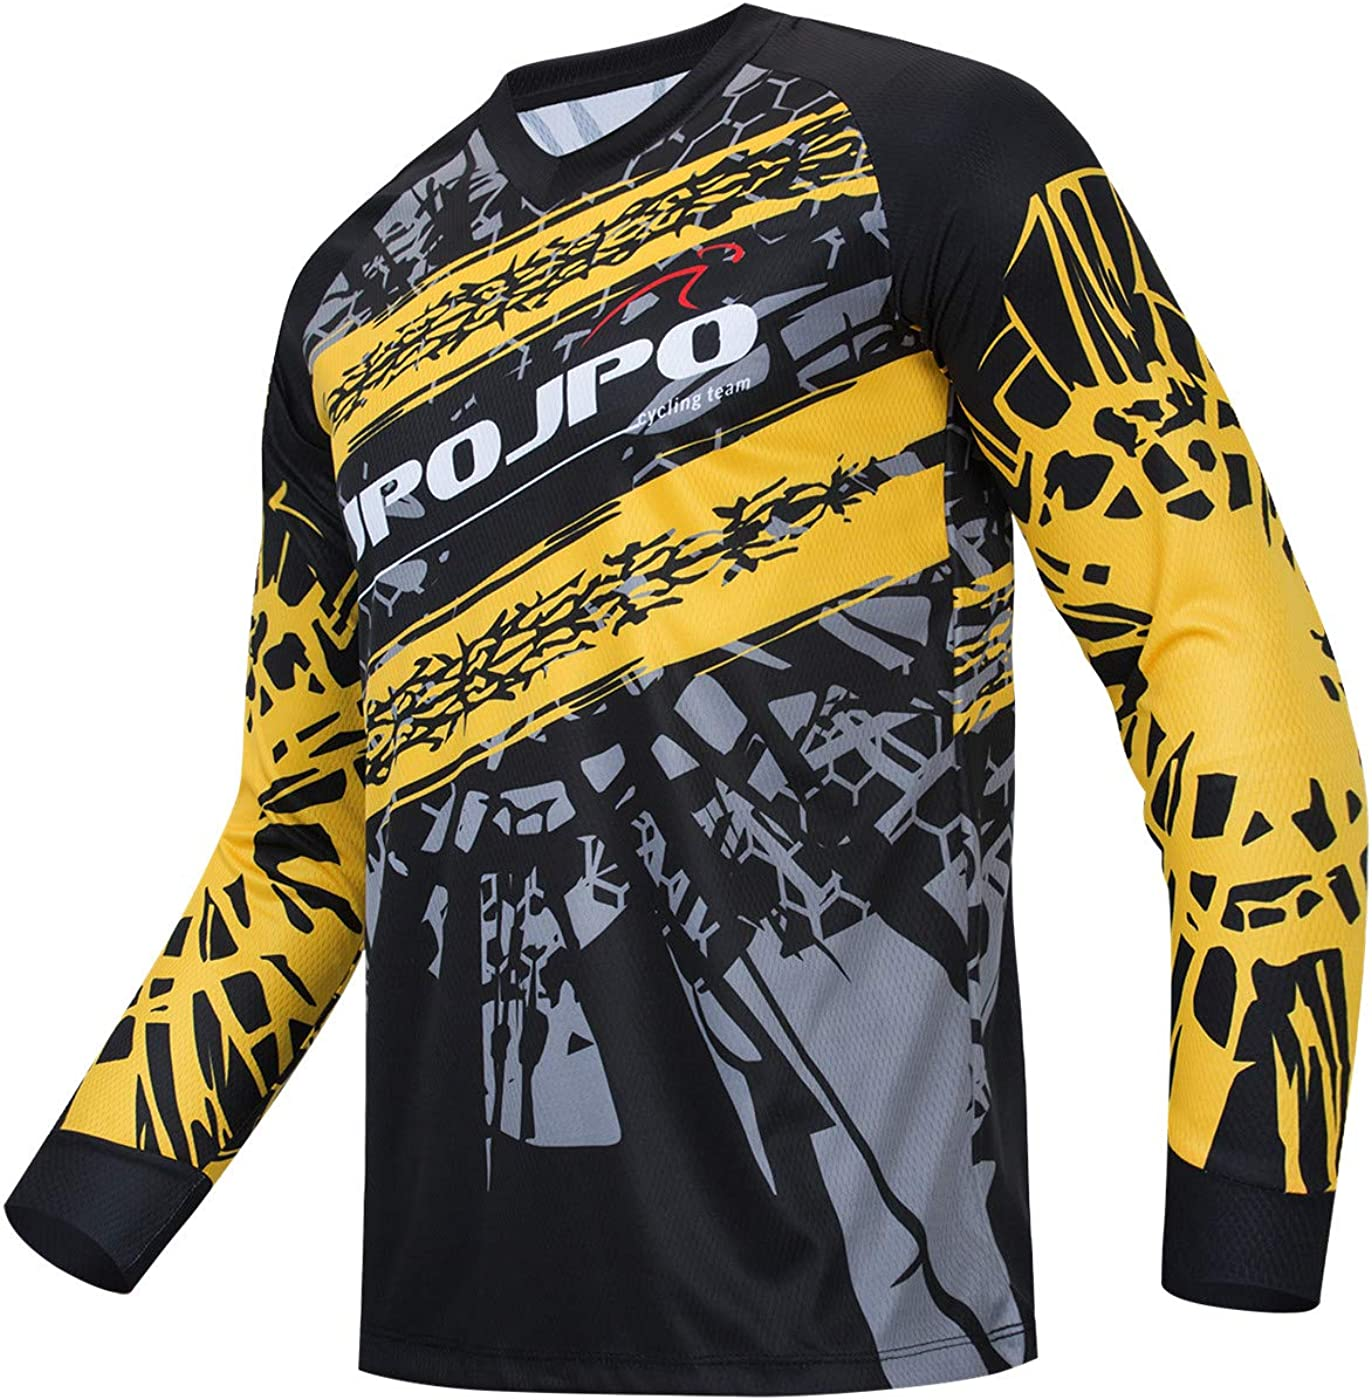 Hotlion Cycling Jersey Popular products Men Max 88% OFF Long Motocross Sleeve Shirt MTB Off-R